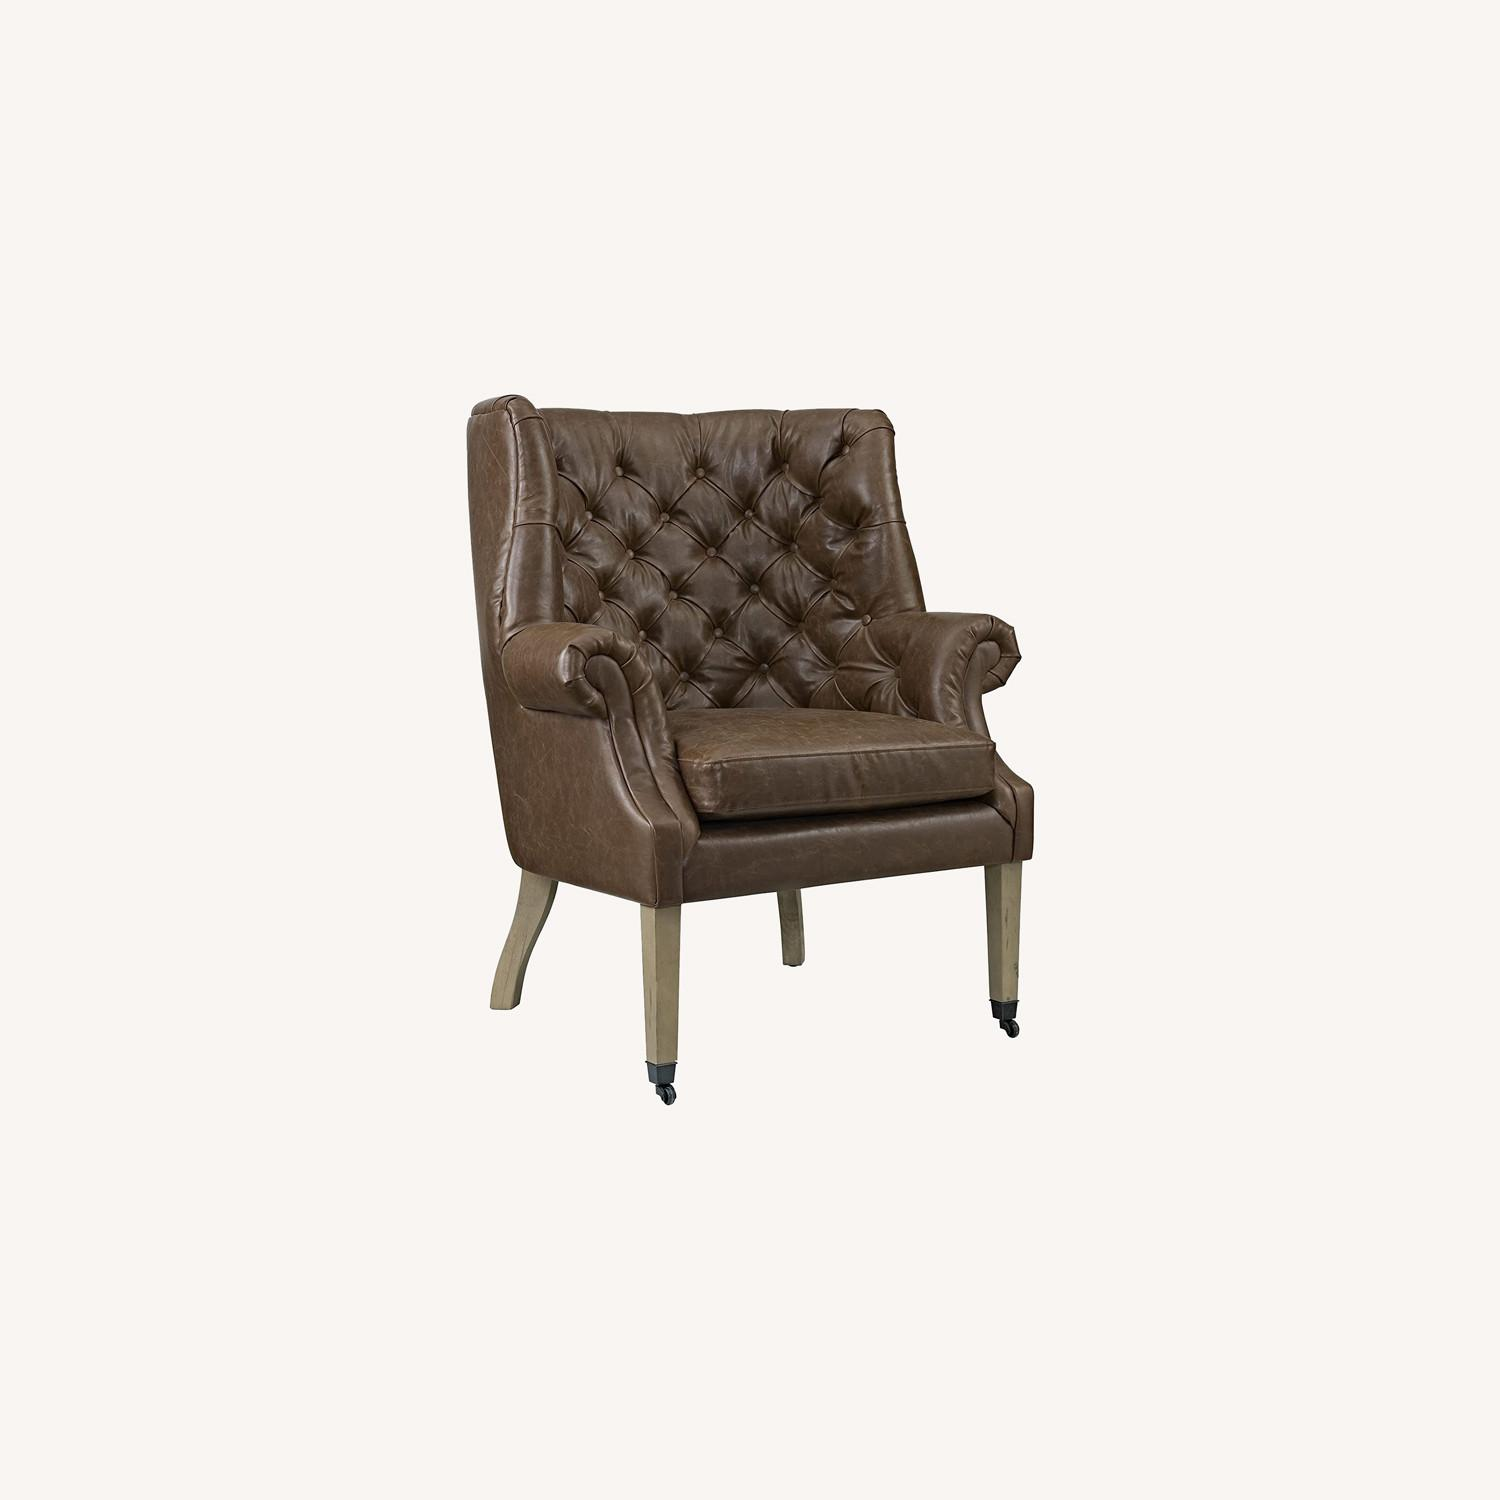 Accent Chair In Brown Vinyl Upholstery Finish - image-8